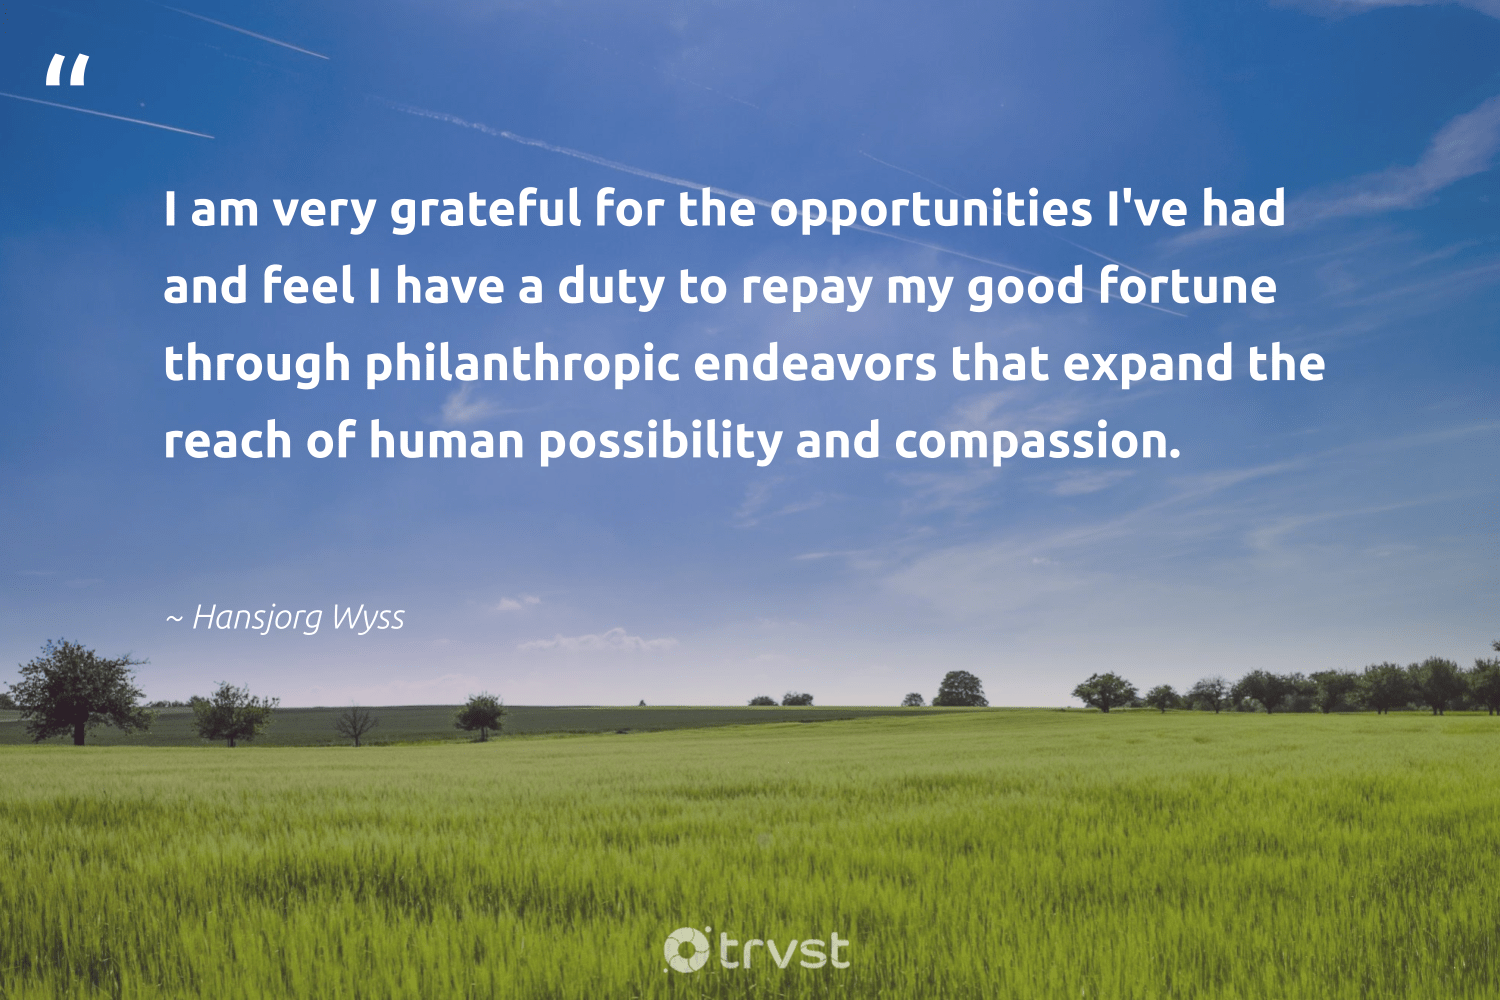 """I am very grateful for the opportunities I've had and feel I have a duty to repay my good fortune through philanthropic endeavors that expand the reach of human possibility and compassion.""  - Hansjorg Wyss #trvst #quotes #philanthropy #philanthropic #itscooltobekind #giveforthefuture #planetearthfirst #changemakers #togetherwecan #socialchange #beinspired #dogood"